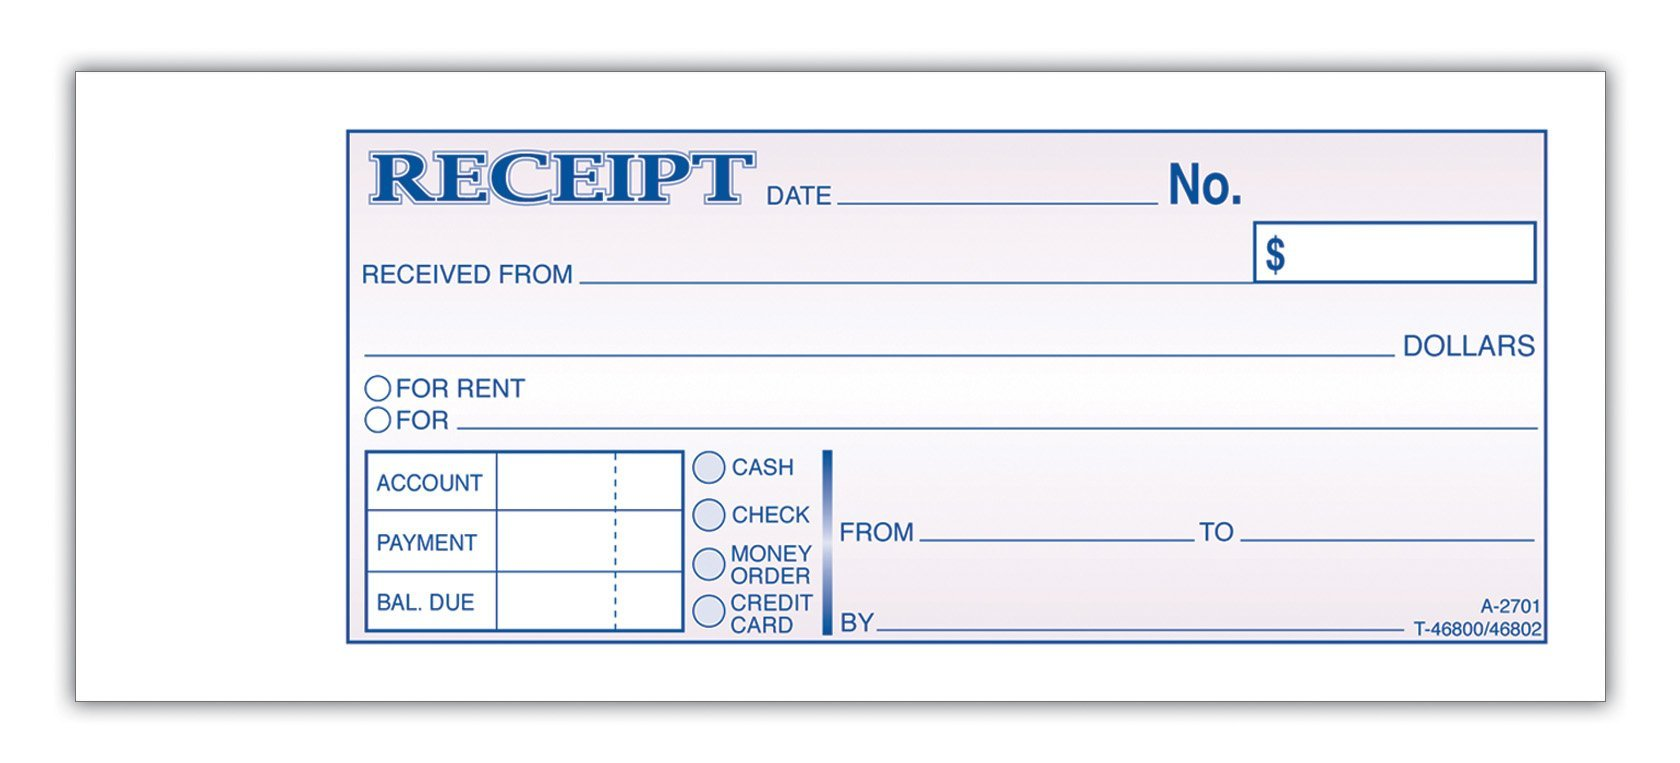 Doc580576 Received Receipt Format Sample General Receipt – Received Receipt Format